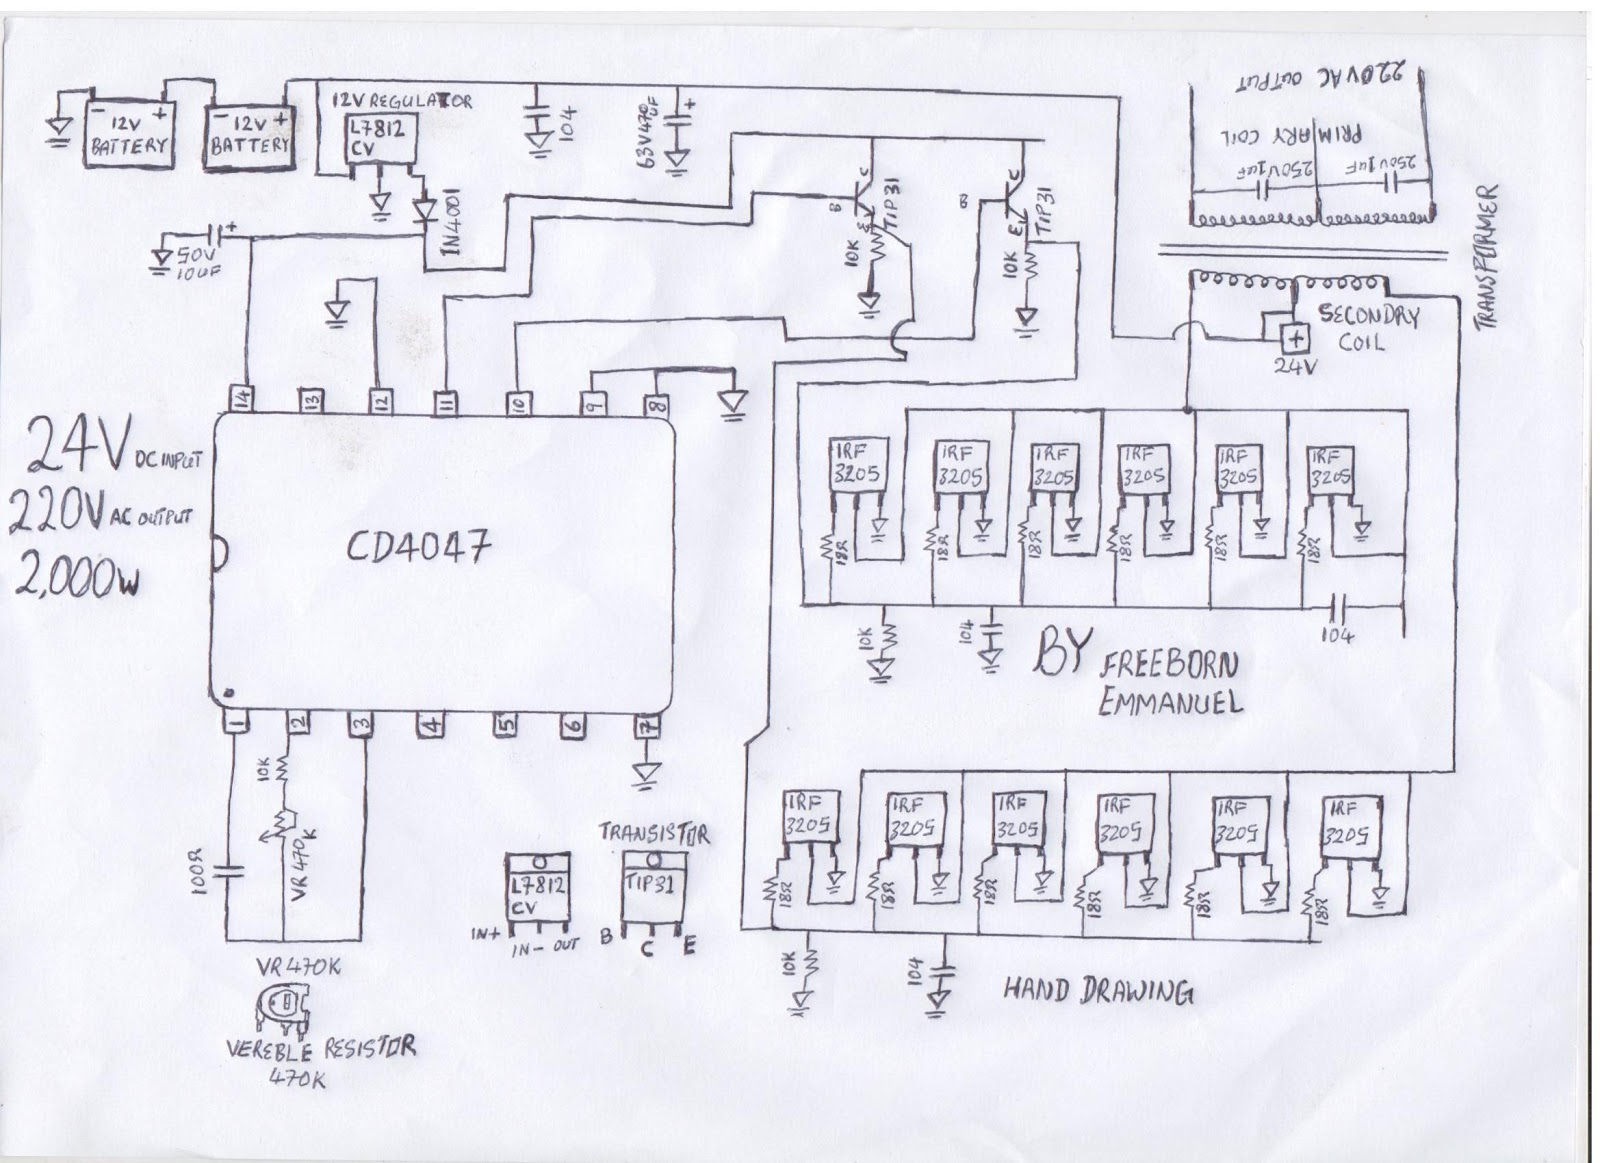 2000 Watts Inverter Circuit Diagram - Circuit Diagram Images